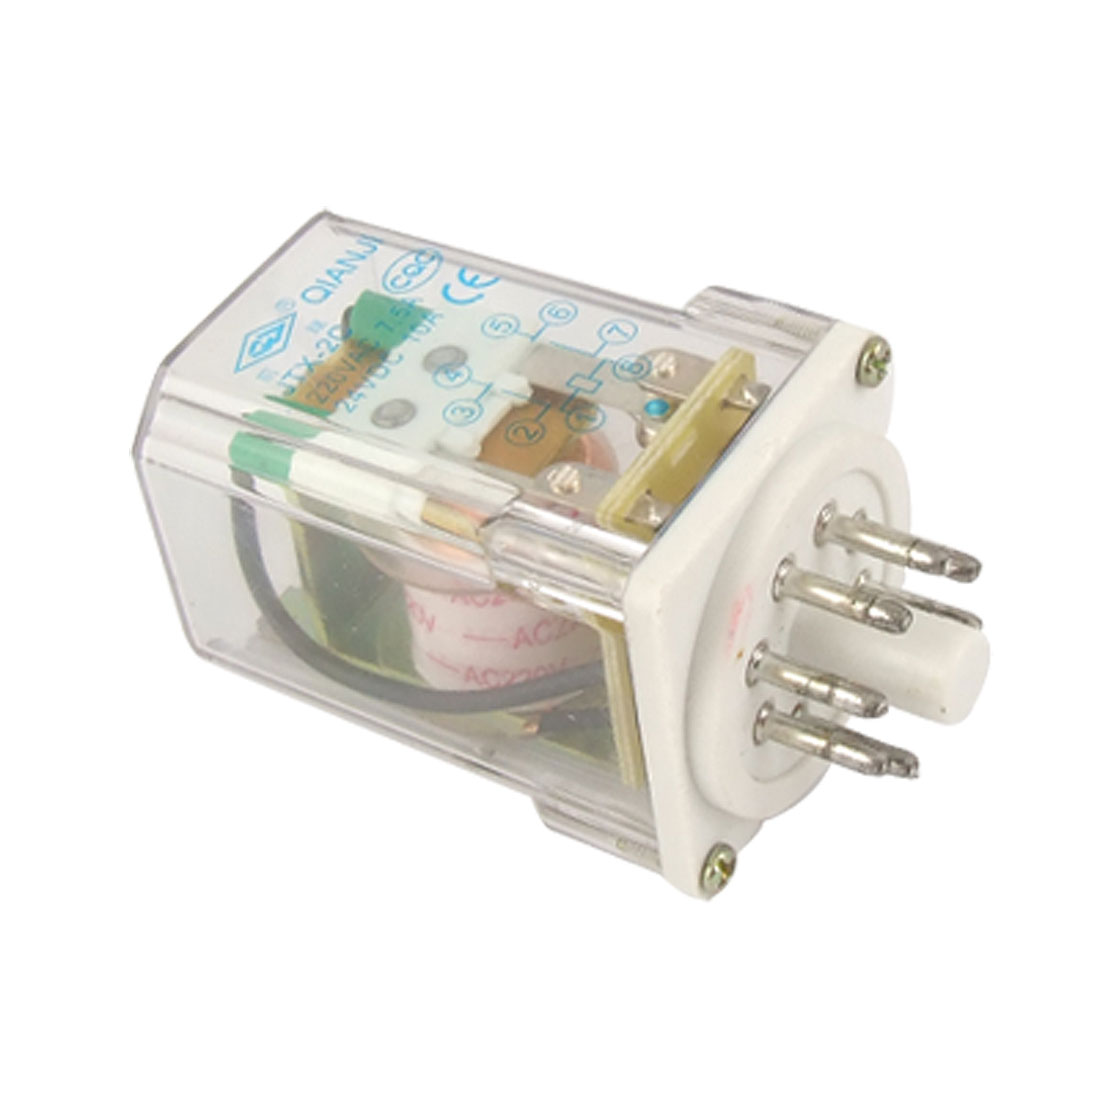 JTX-2C AC 220V Coil Electromagnetic Relay 8 Pins DPDT 2 NO 2 NC